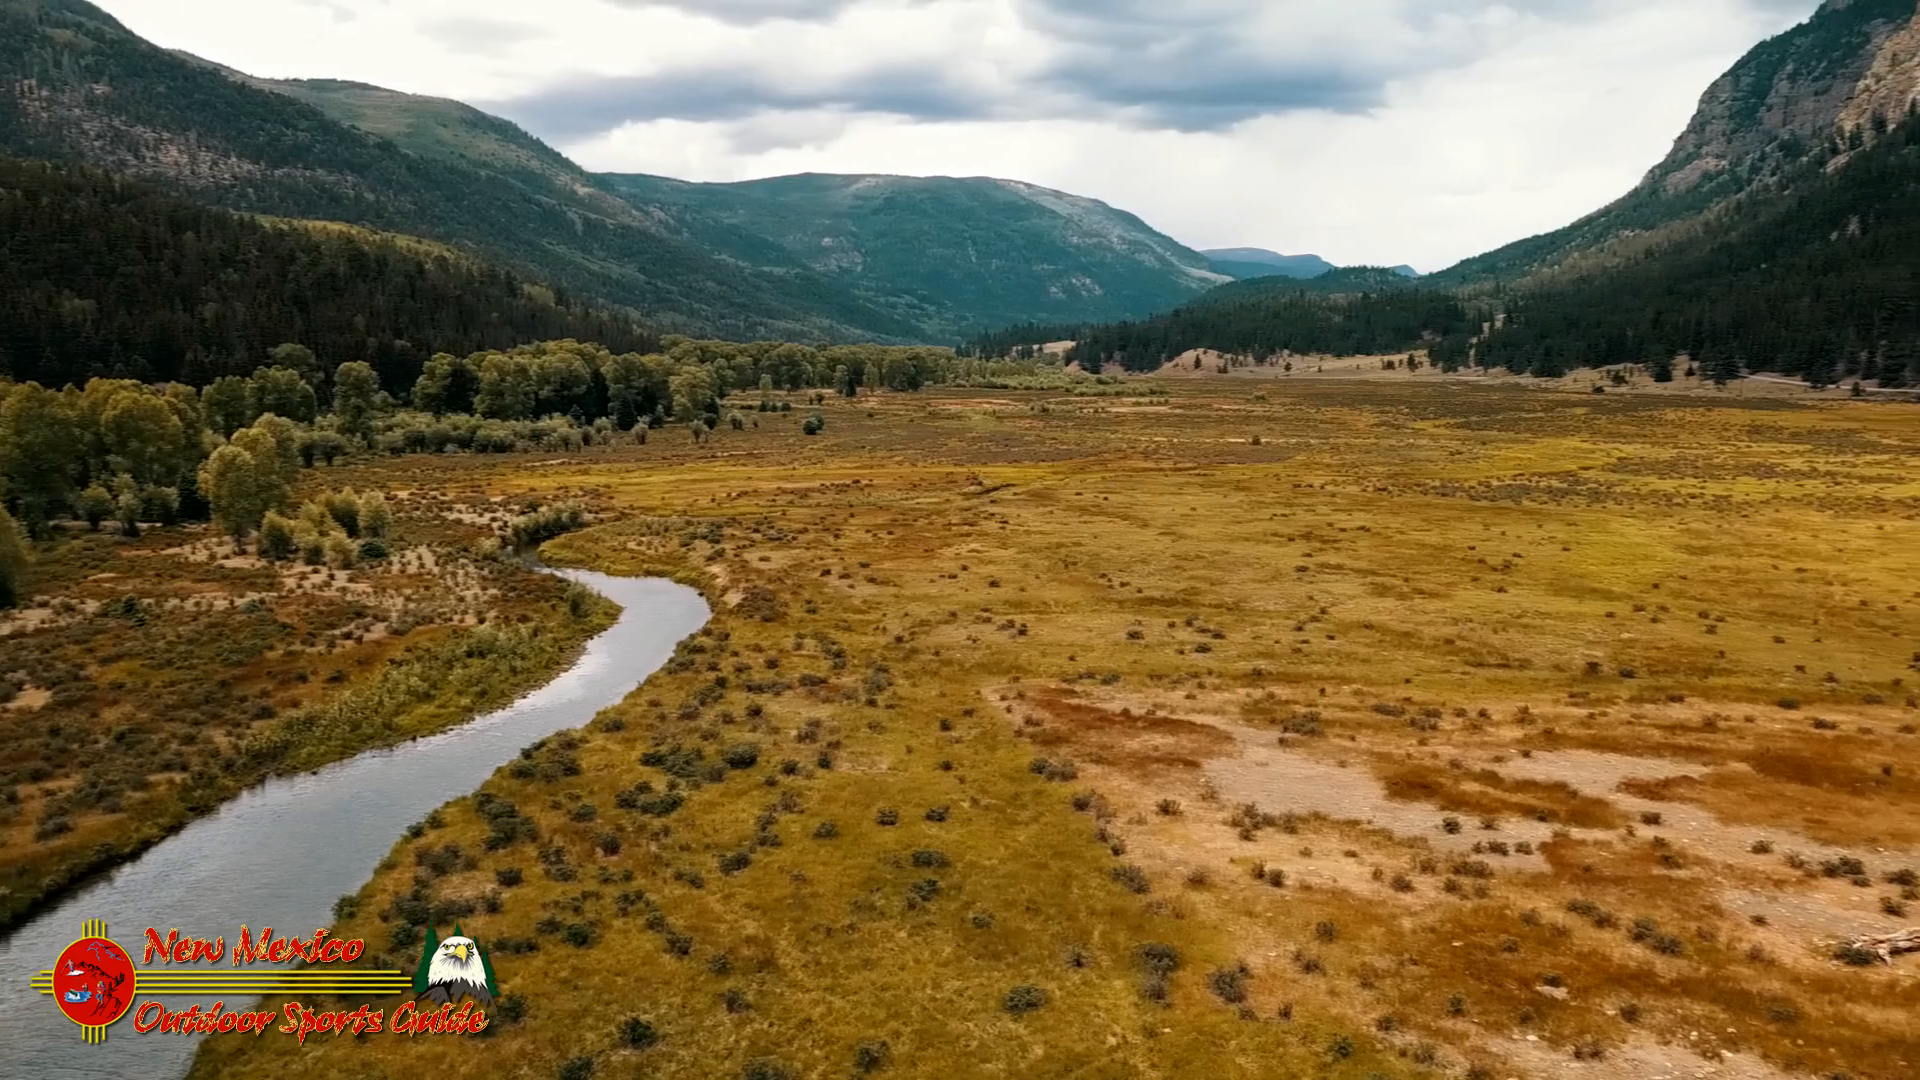 Conejos River Fly Fishing Public Access FR 250 Near Spectacle Lake Campground July 16, 2020